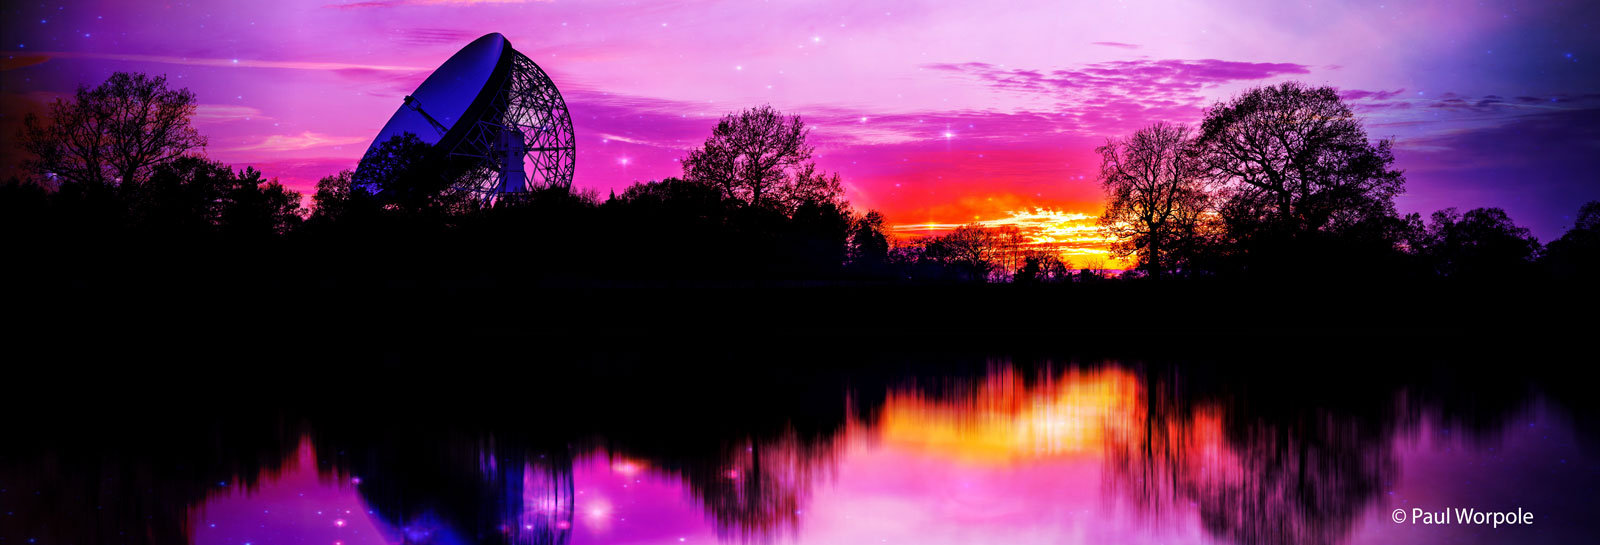 Jodrell Bank, Knutsford, Prime Global People, Medical Communications